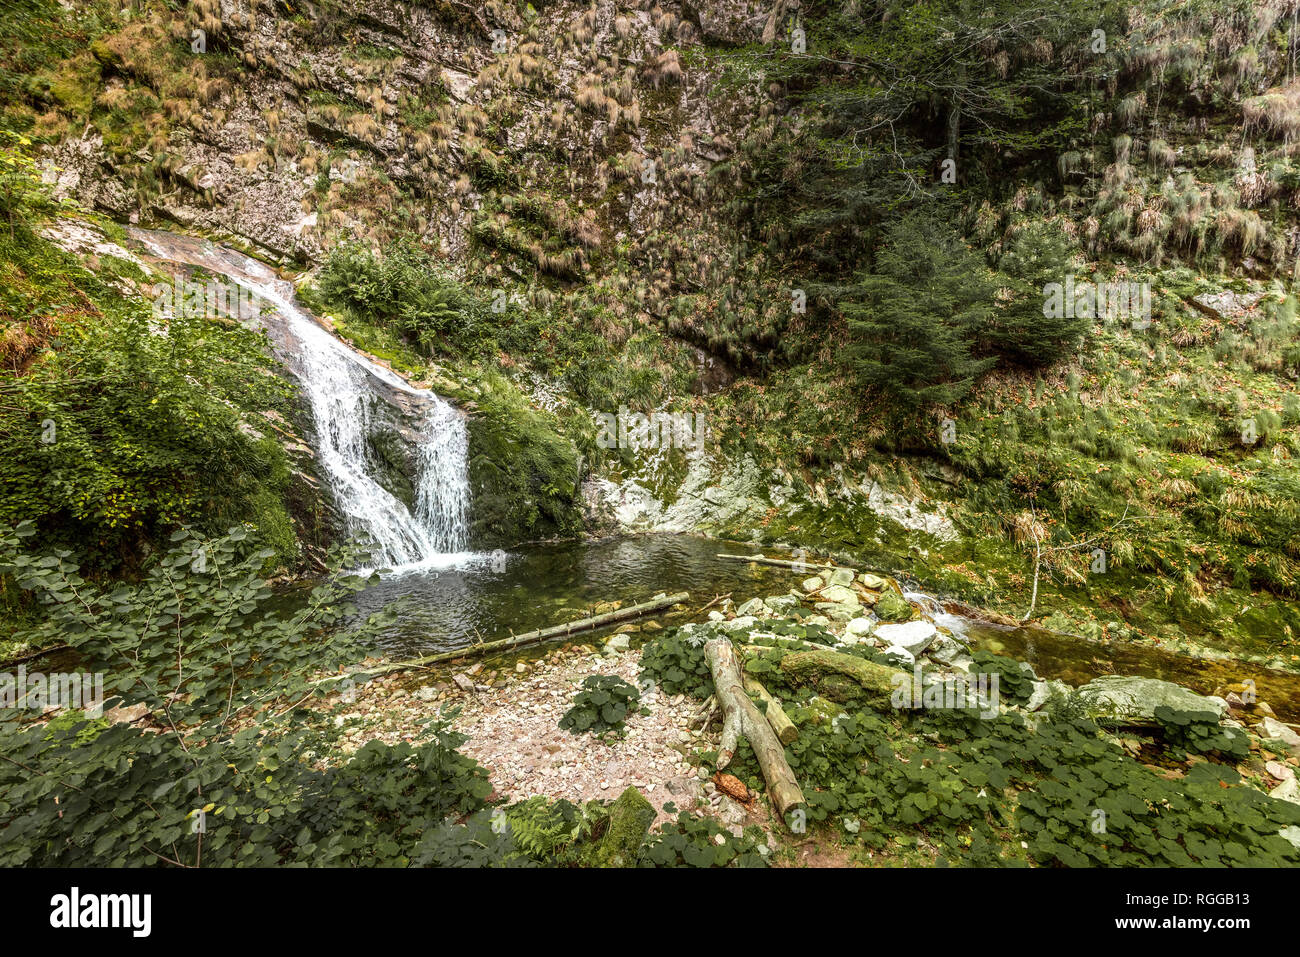 All Saints Waterfalls, town Oppenau, Northern Black Forest, Germany - Stock Image